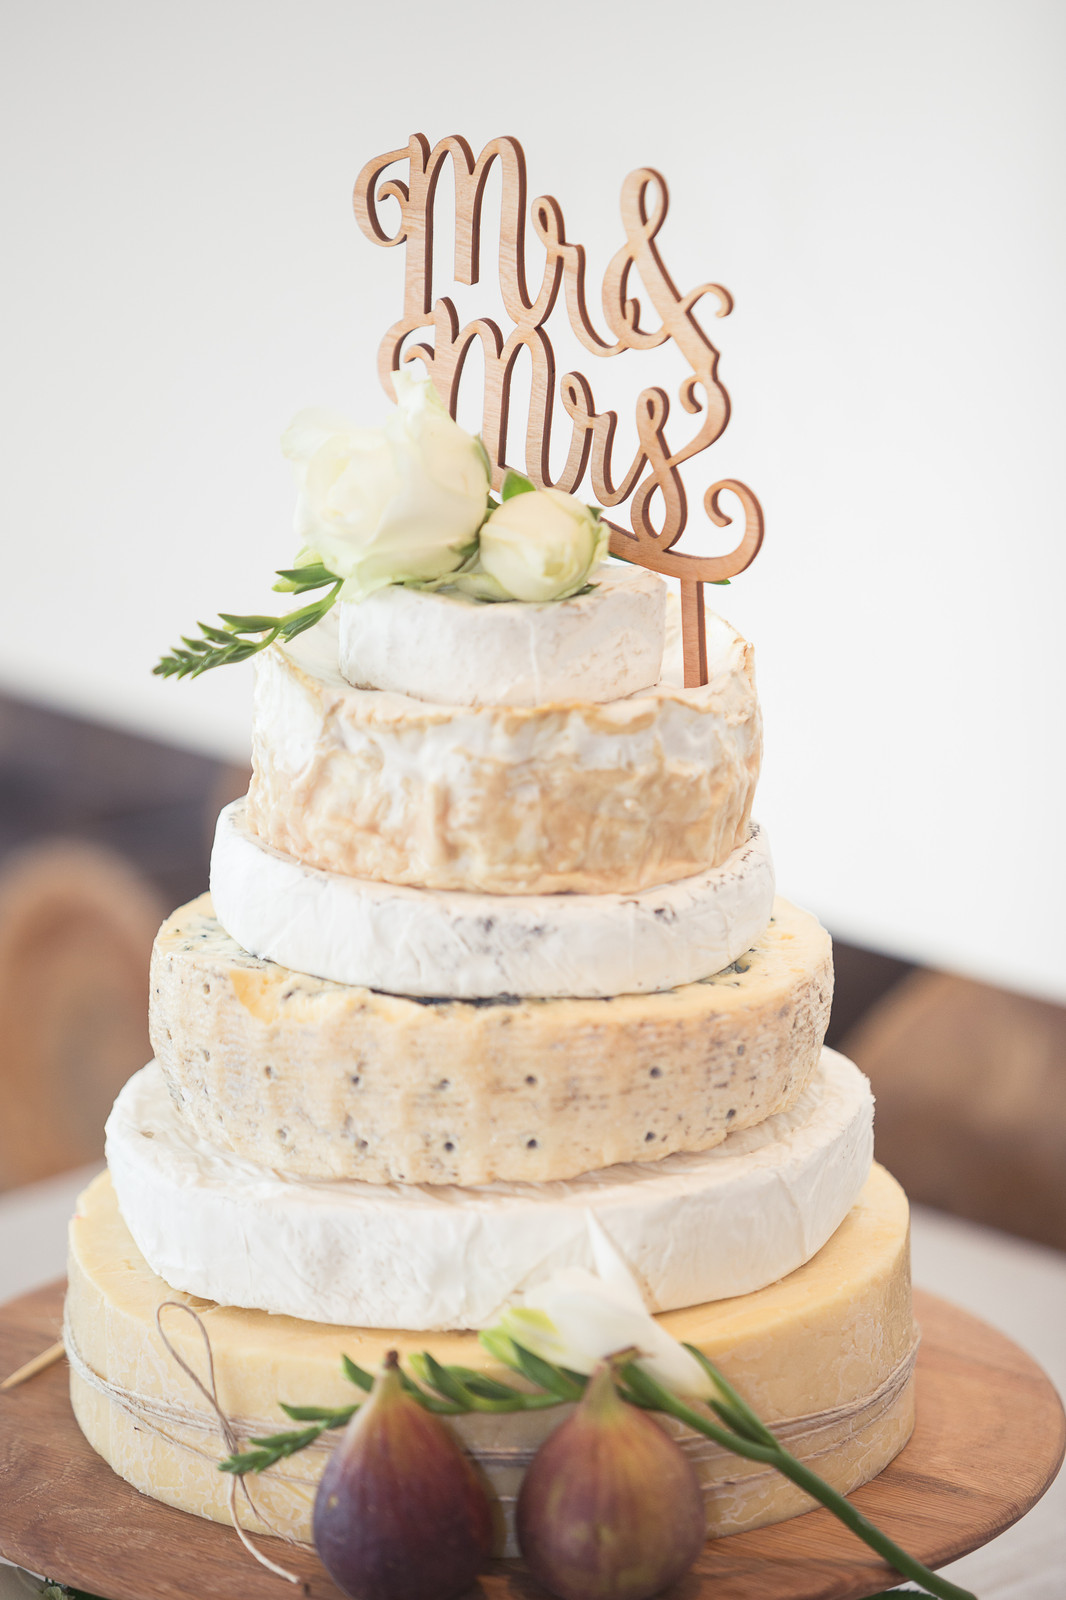 Cheese wedding cake | Photographer | Melbourne | Darling One